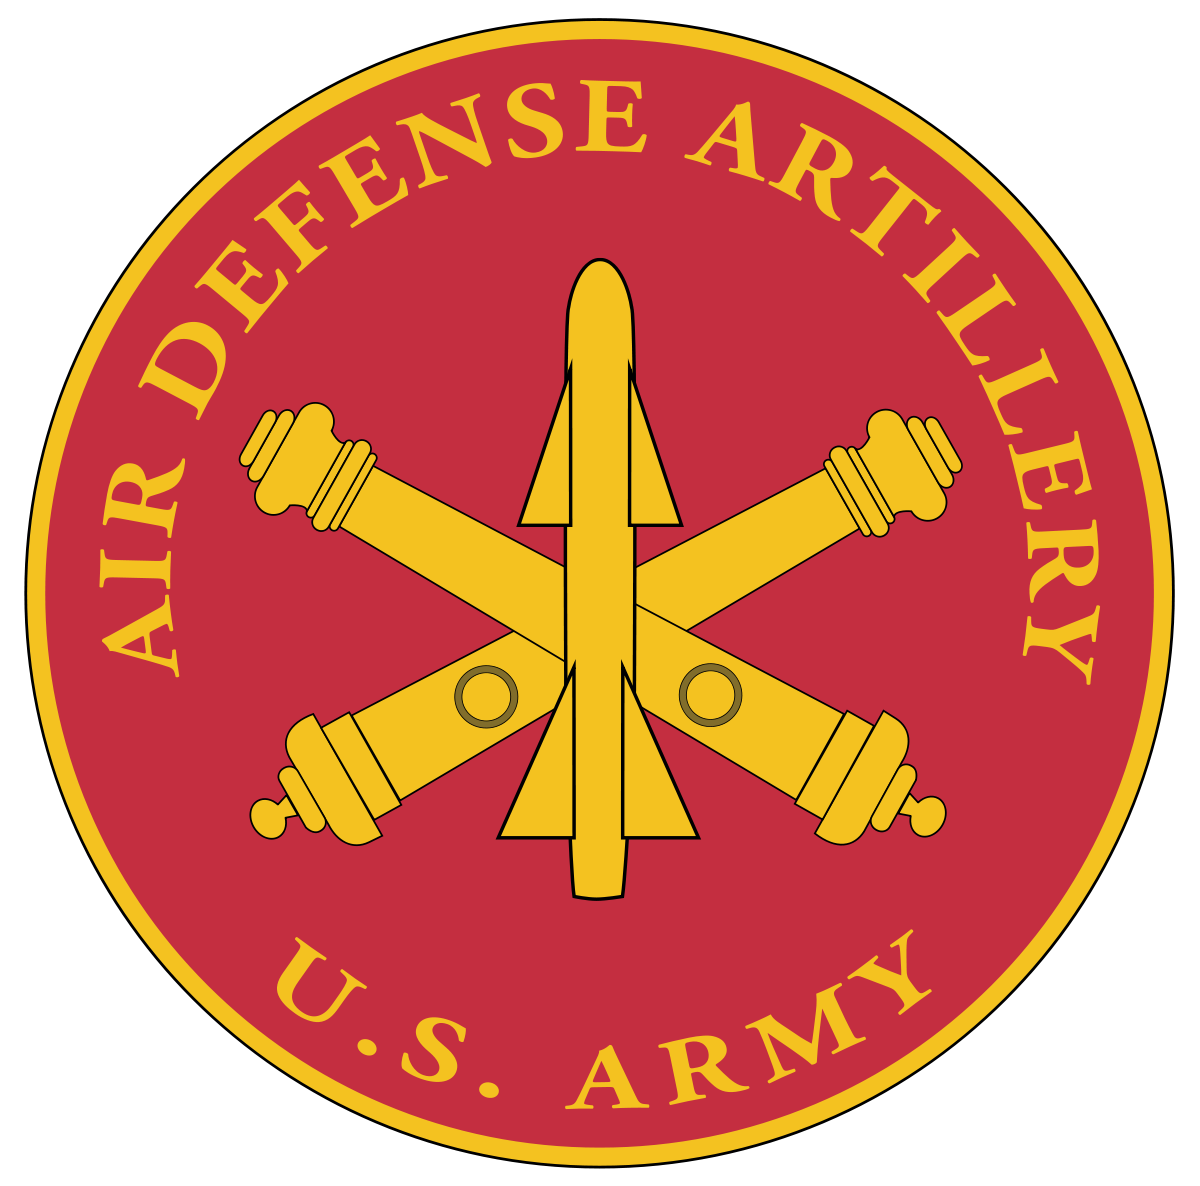 Owner of us defense company clipart picture transparent stock Air Defense Artillery Branch - Wikipedia picture transparent stock